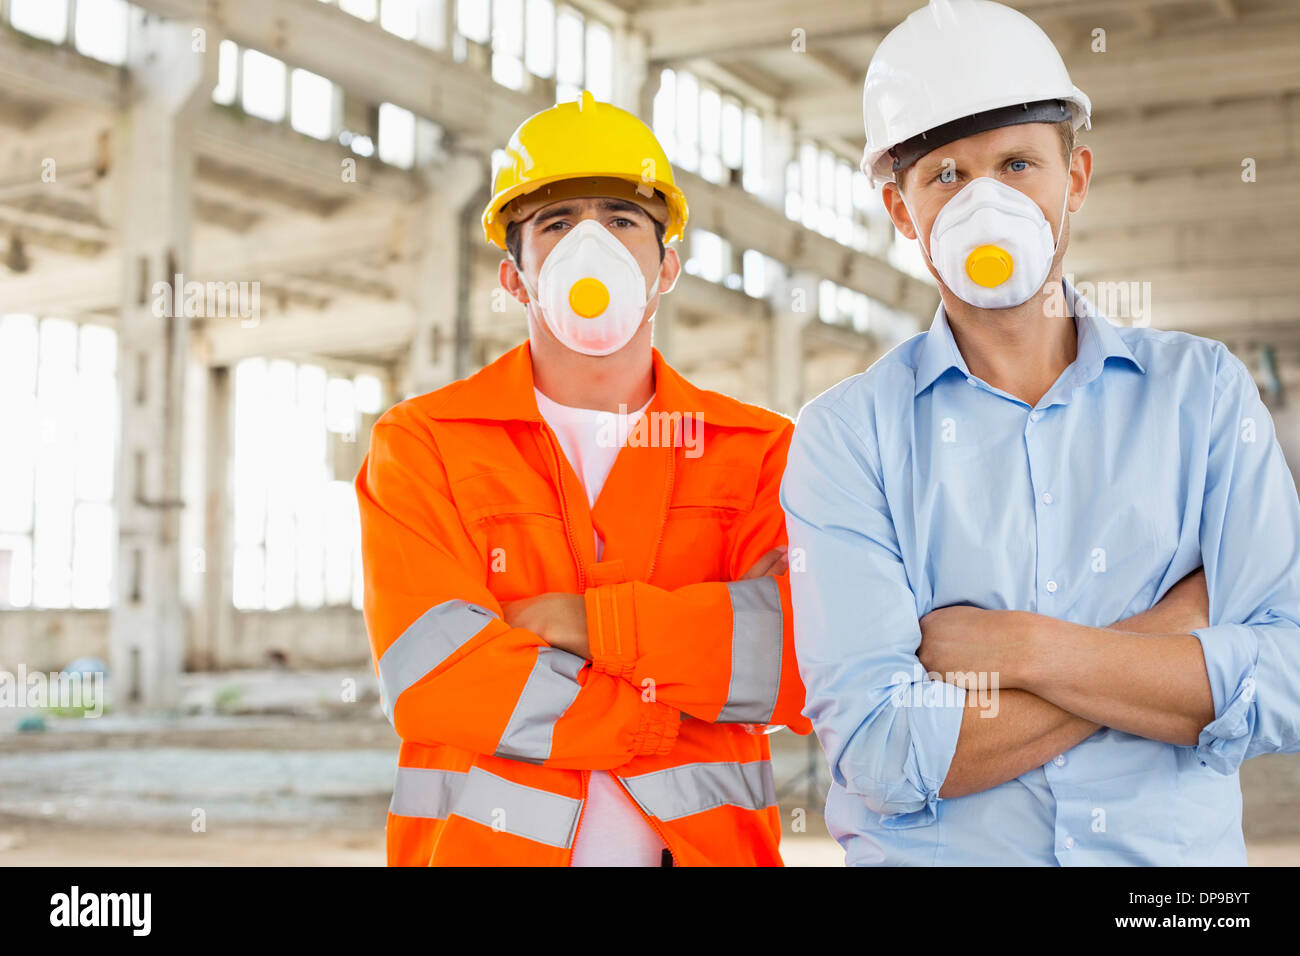 Portrait of confident male construction workers in protective workwear at site - Stock Image